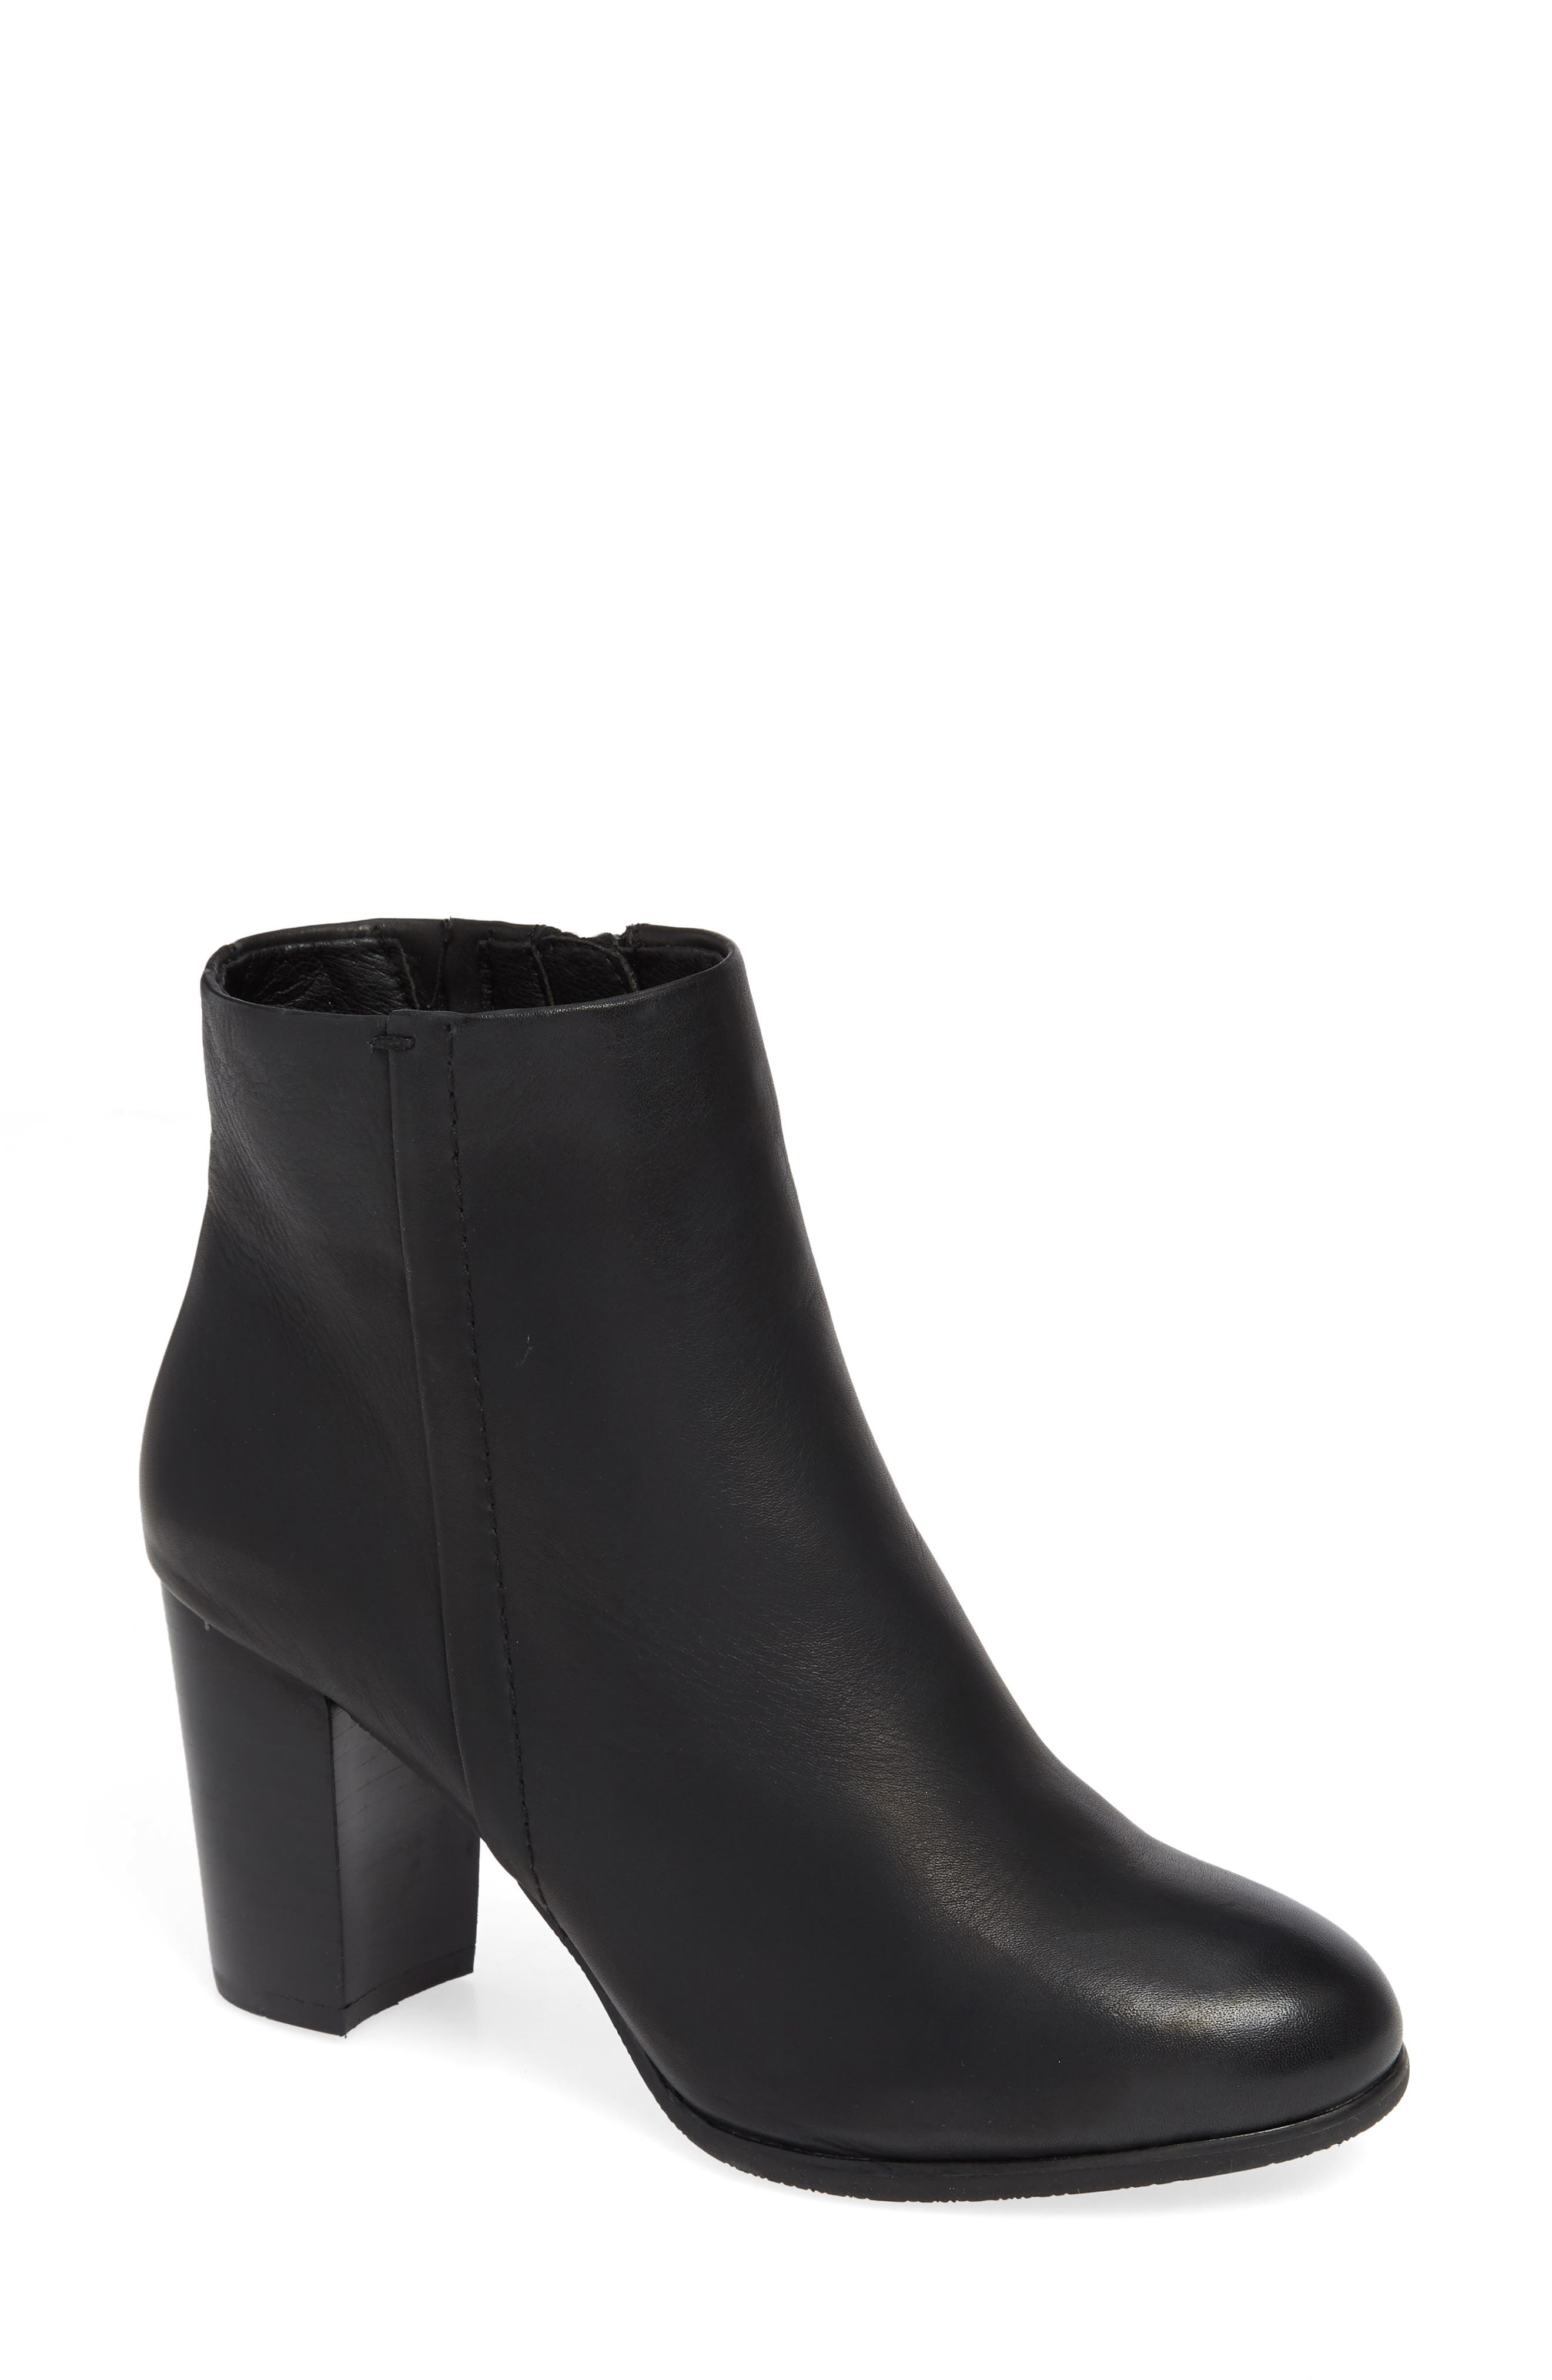 Kennedy Ankle Bootie,                         Main,                         color, BLACK LEATHER